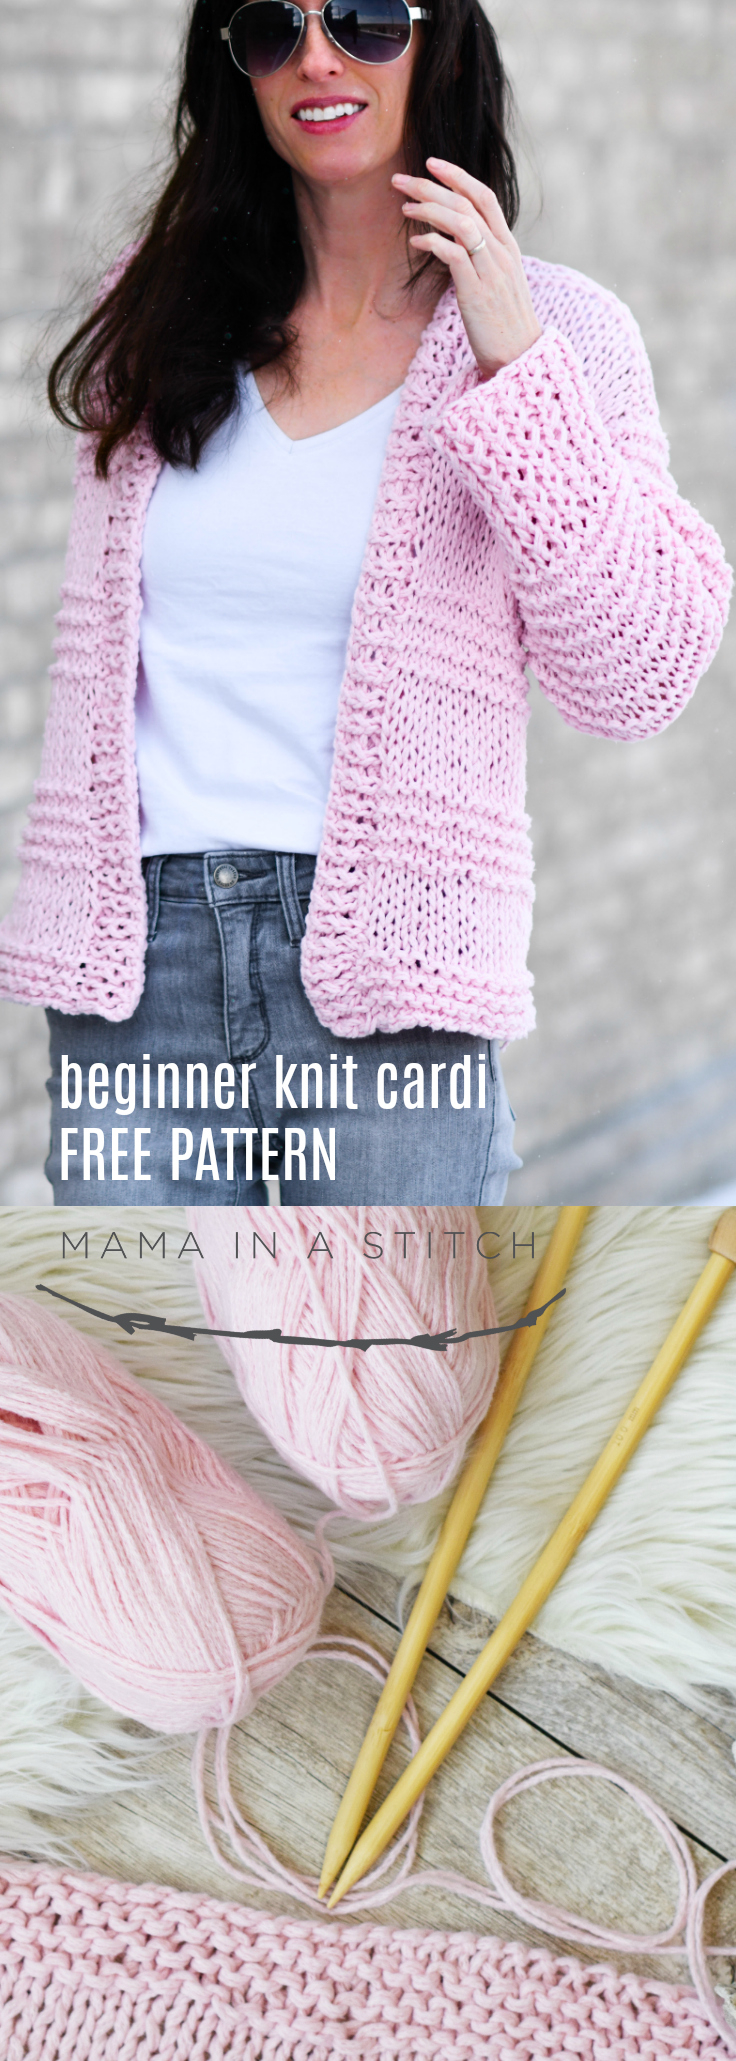 Knitted Jacket Patterns Free Cotton Candy Easy Knit Cardigan Pattern Mama In A Stitch